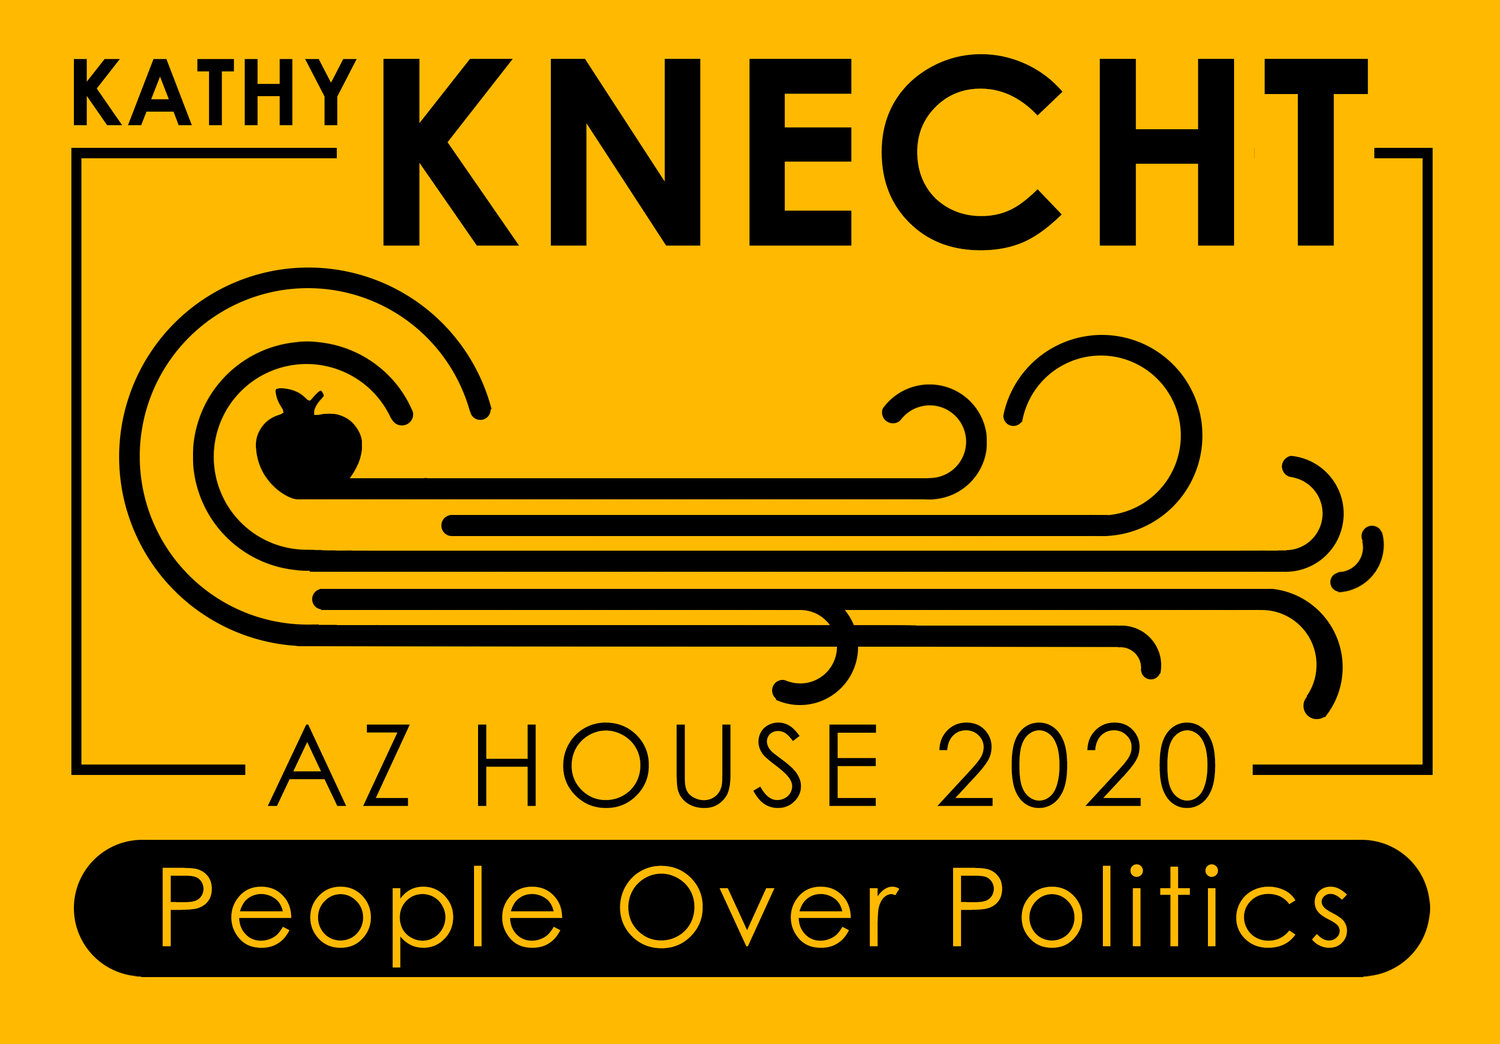 Kathy Knecht for Arizona House in 2020